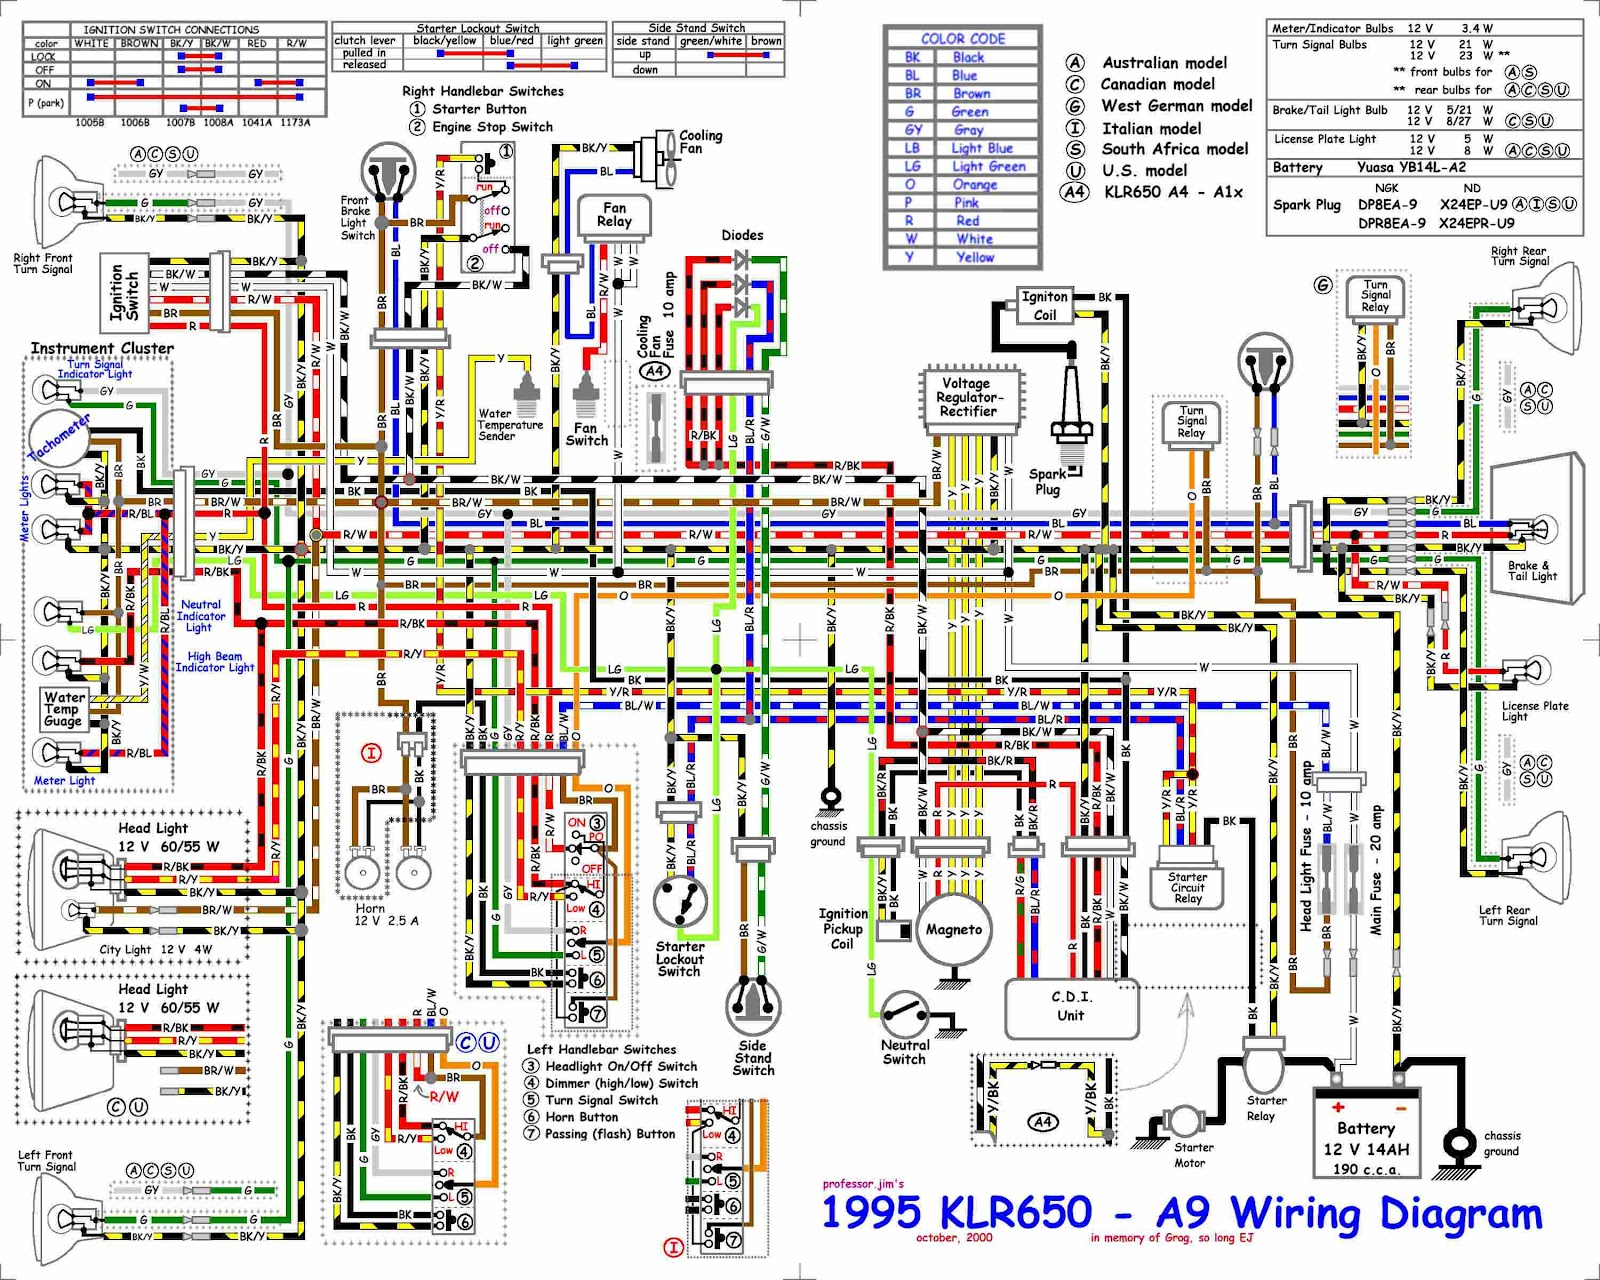 Kawasaki Mt1 Wiring Diagram | Wiring Diagram Technic on kawasaki nomad wiring diagram, kawasaki 1500 accessories, kawasaki 1500 fuel system, kawasaki 1500 parts, kawasaki mean streak, kawasaki vulcan wiring diagram,